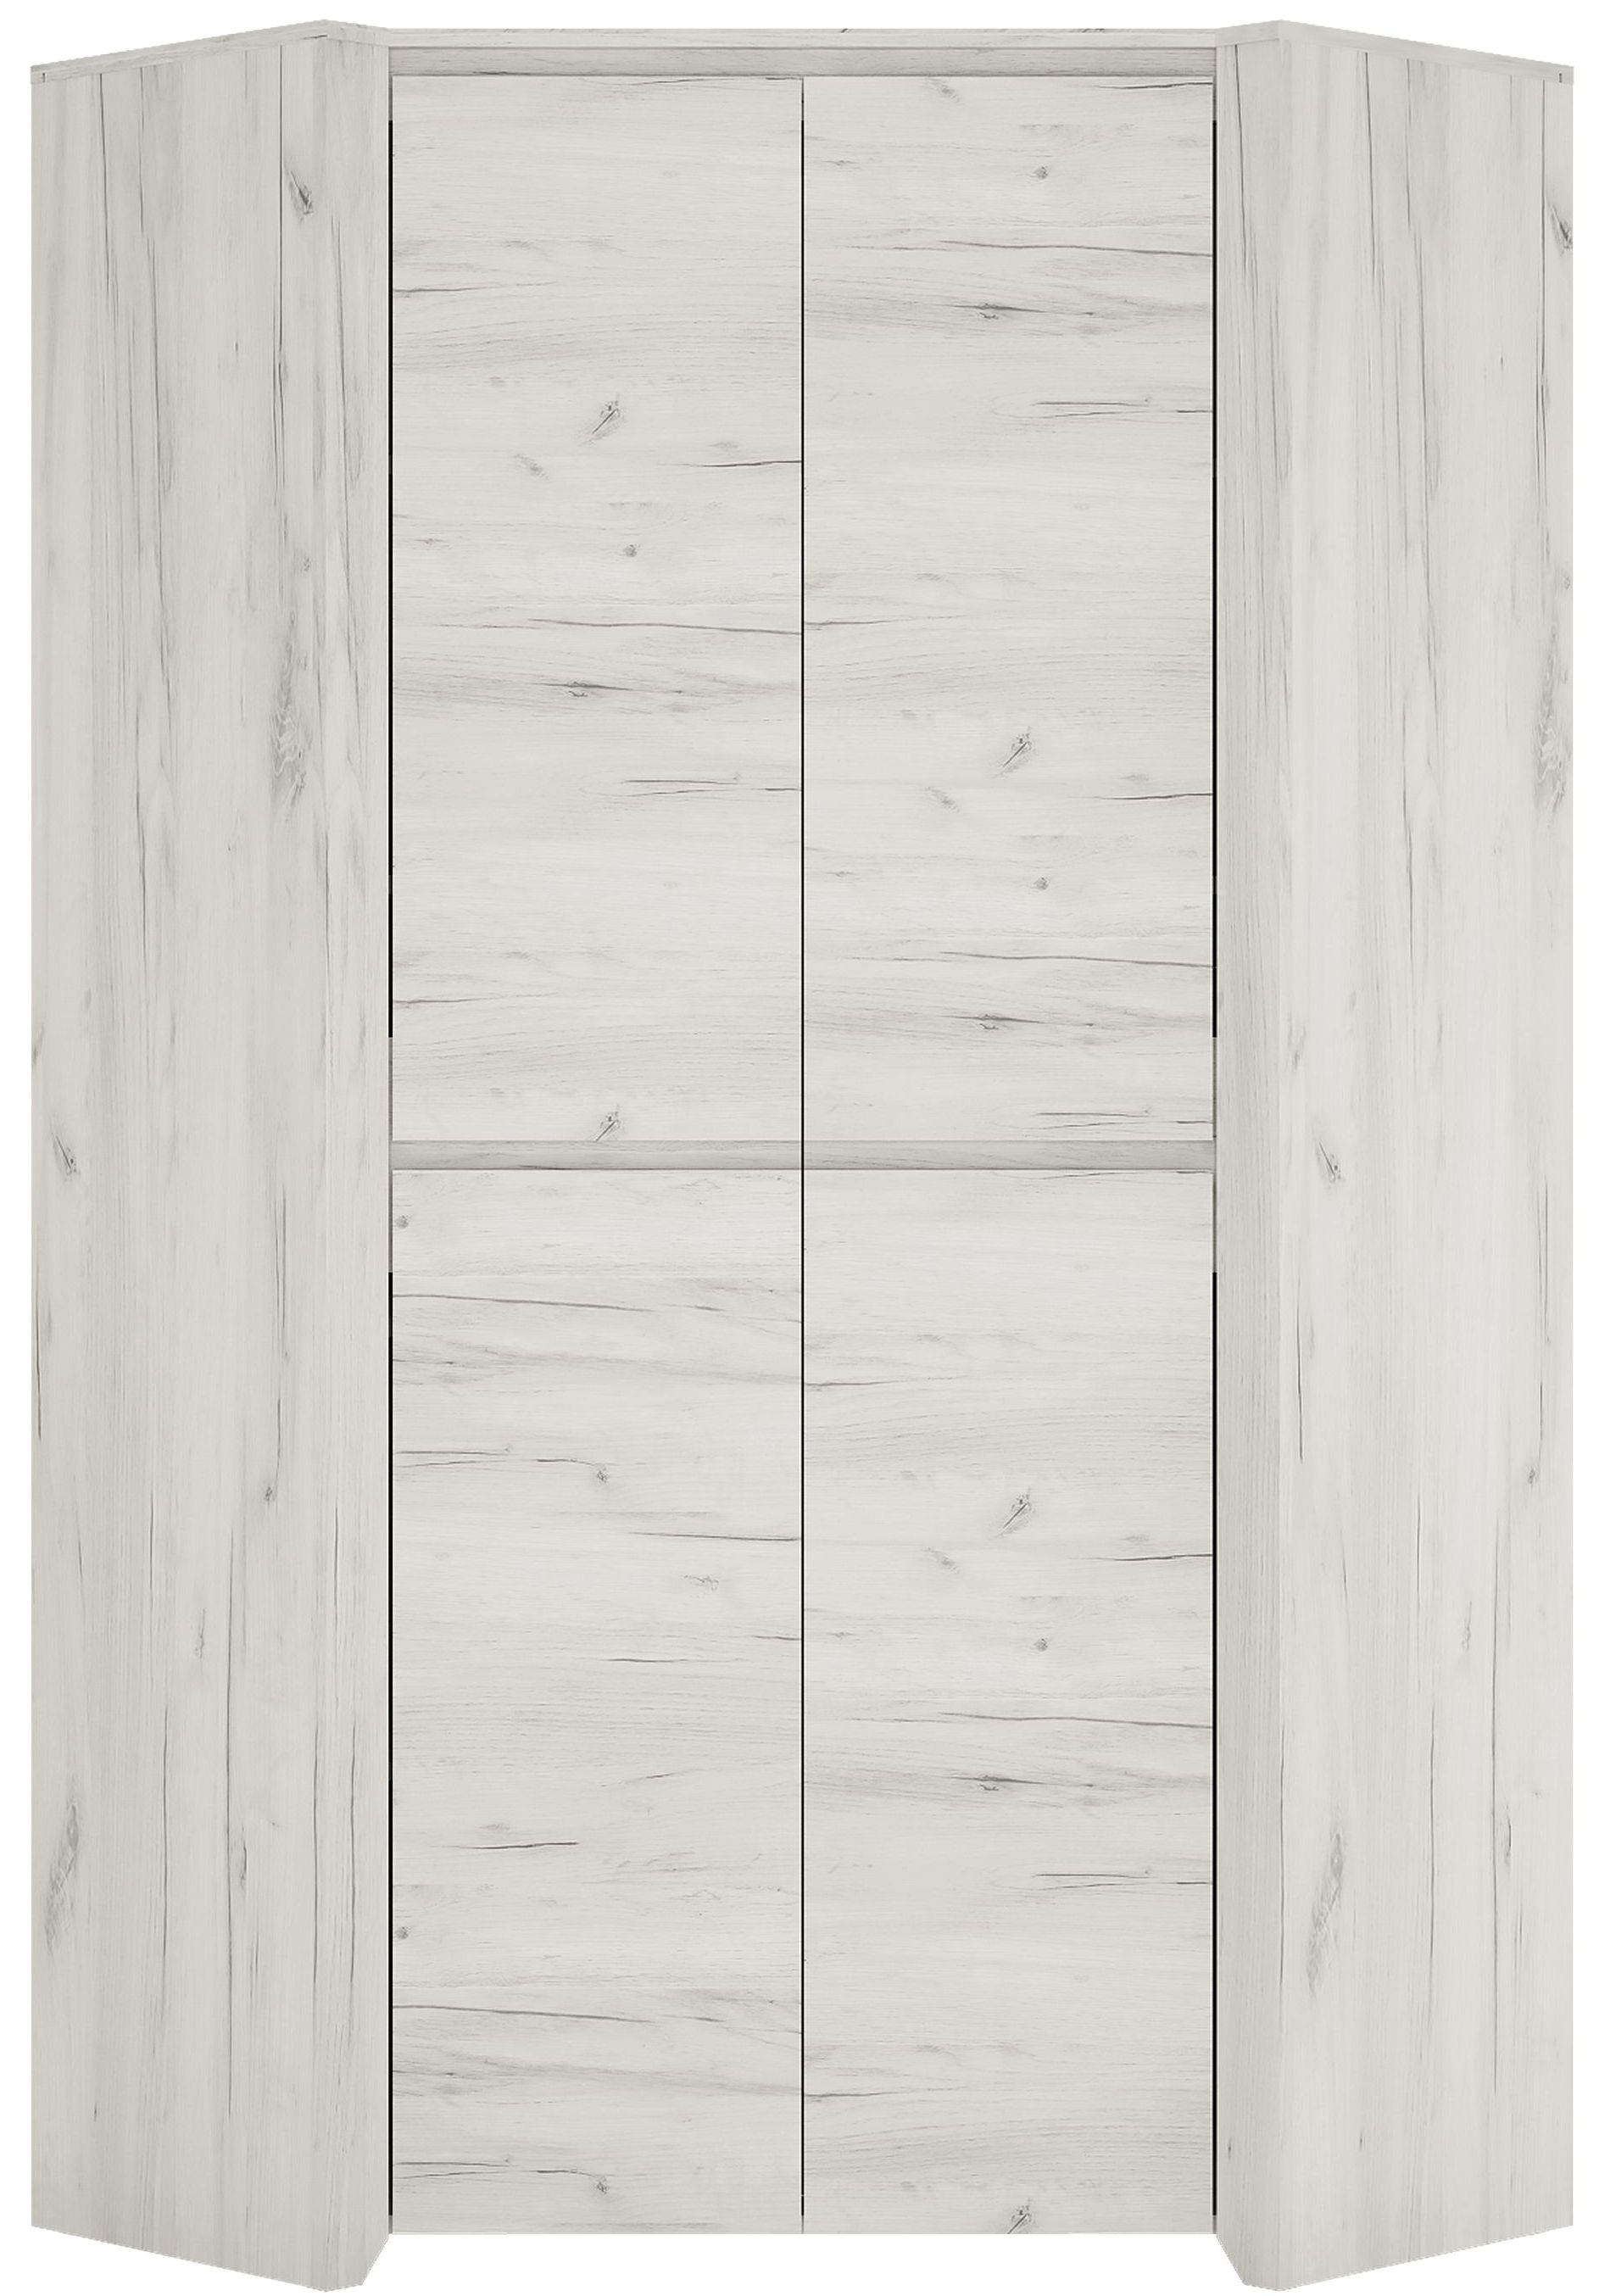 Angel 2 Door Corner Wardrobe - White Crafted Oak Melamine